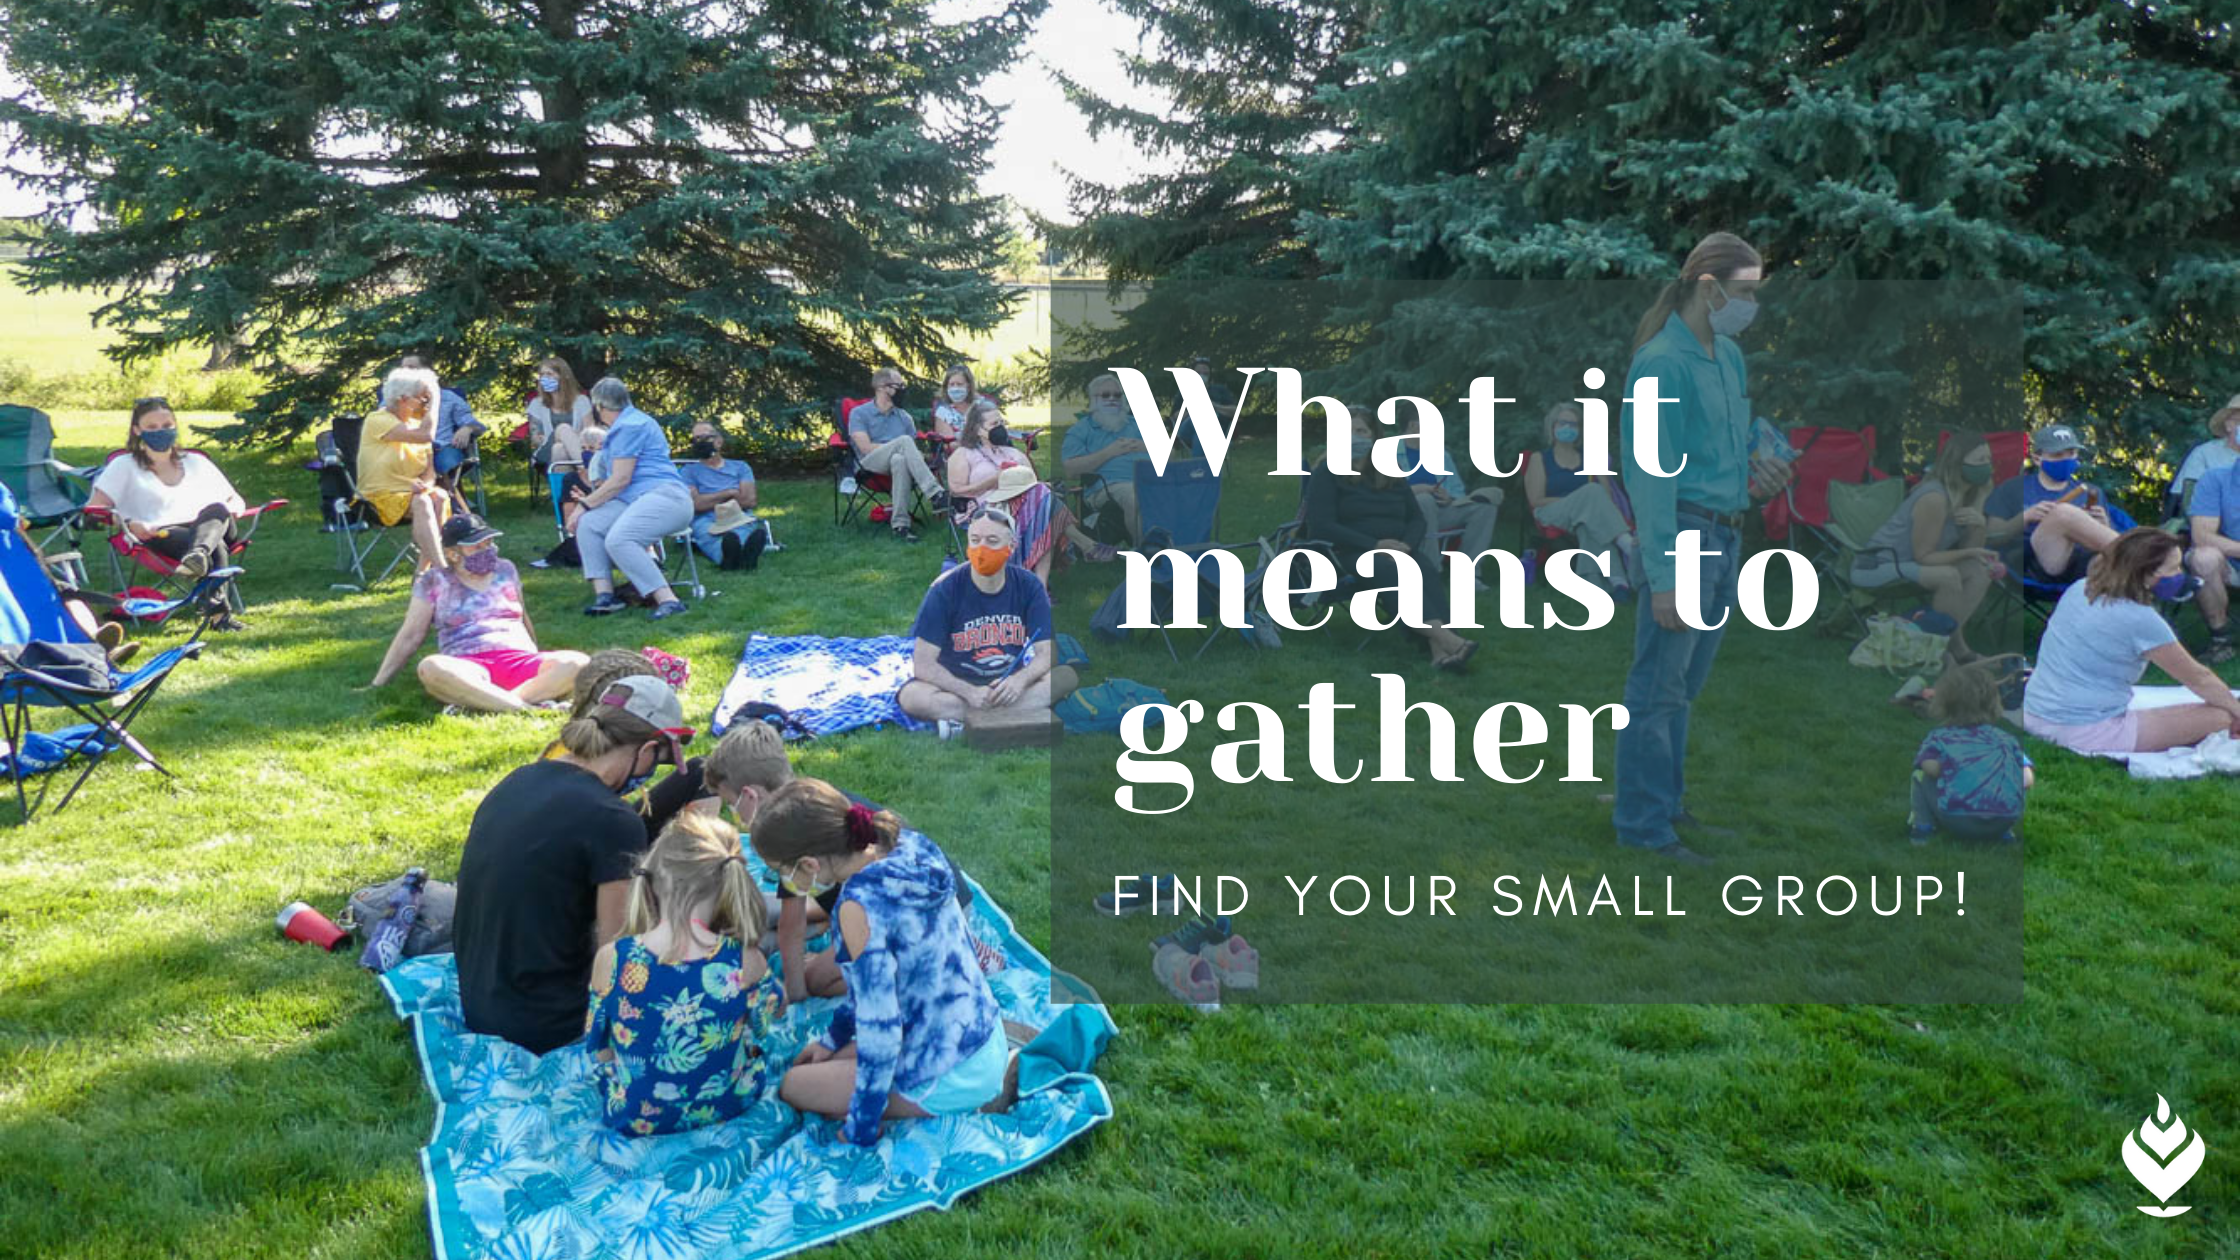 What it means to gather (Find your small group!)